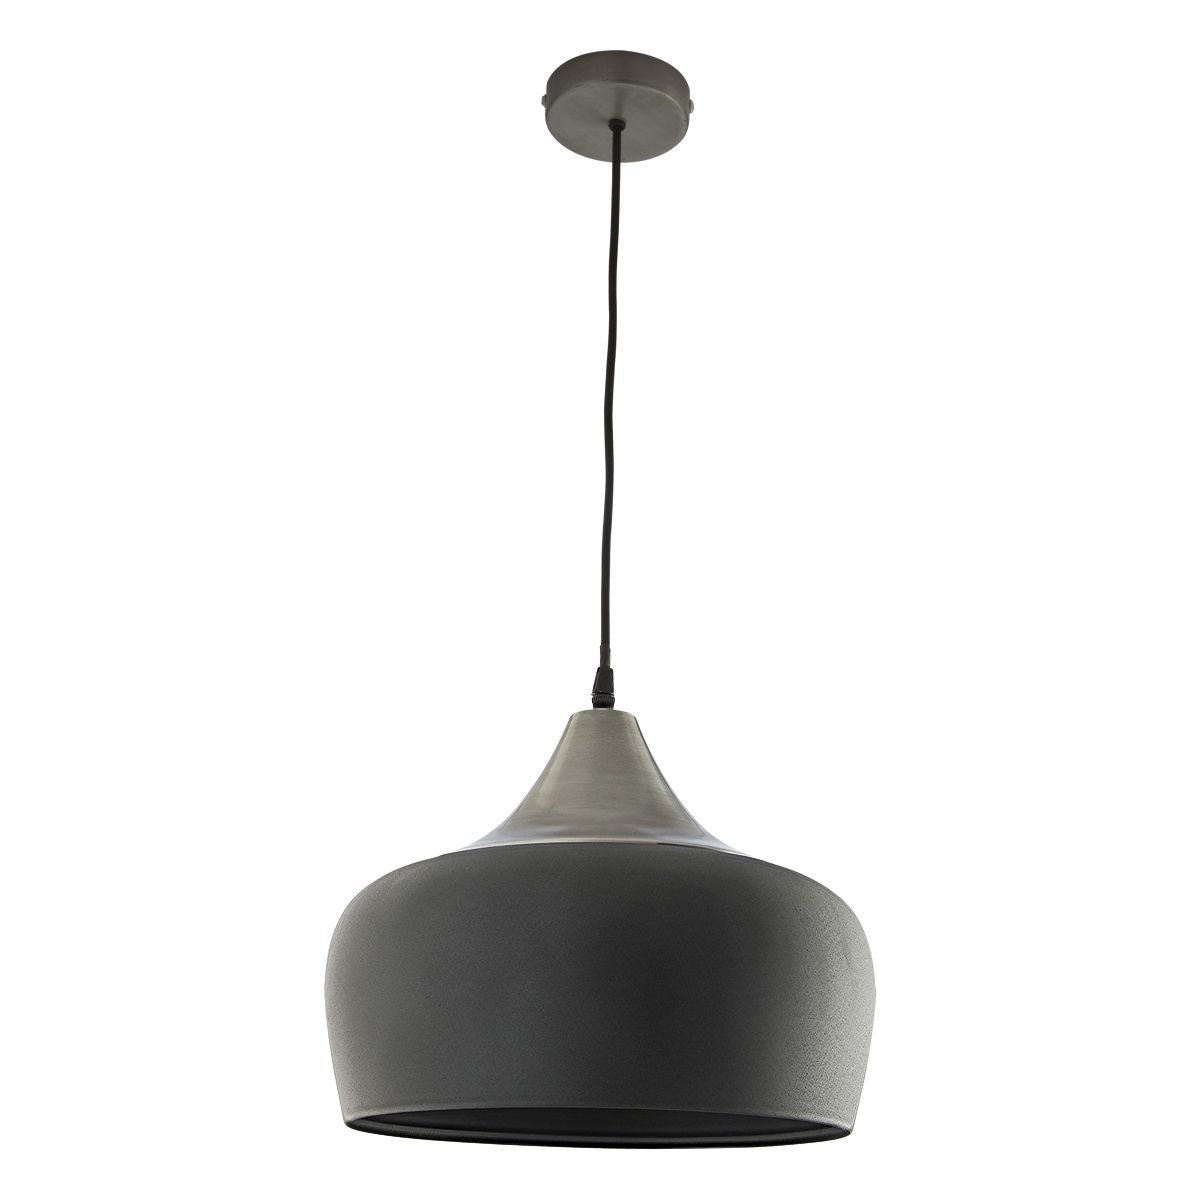 1 Light Pendant In Grey & Pewter Chrome - ID 7732